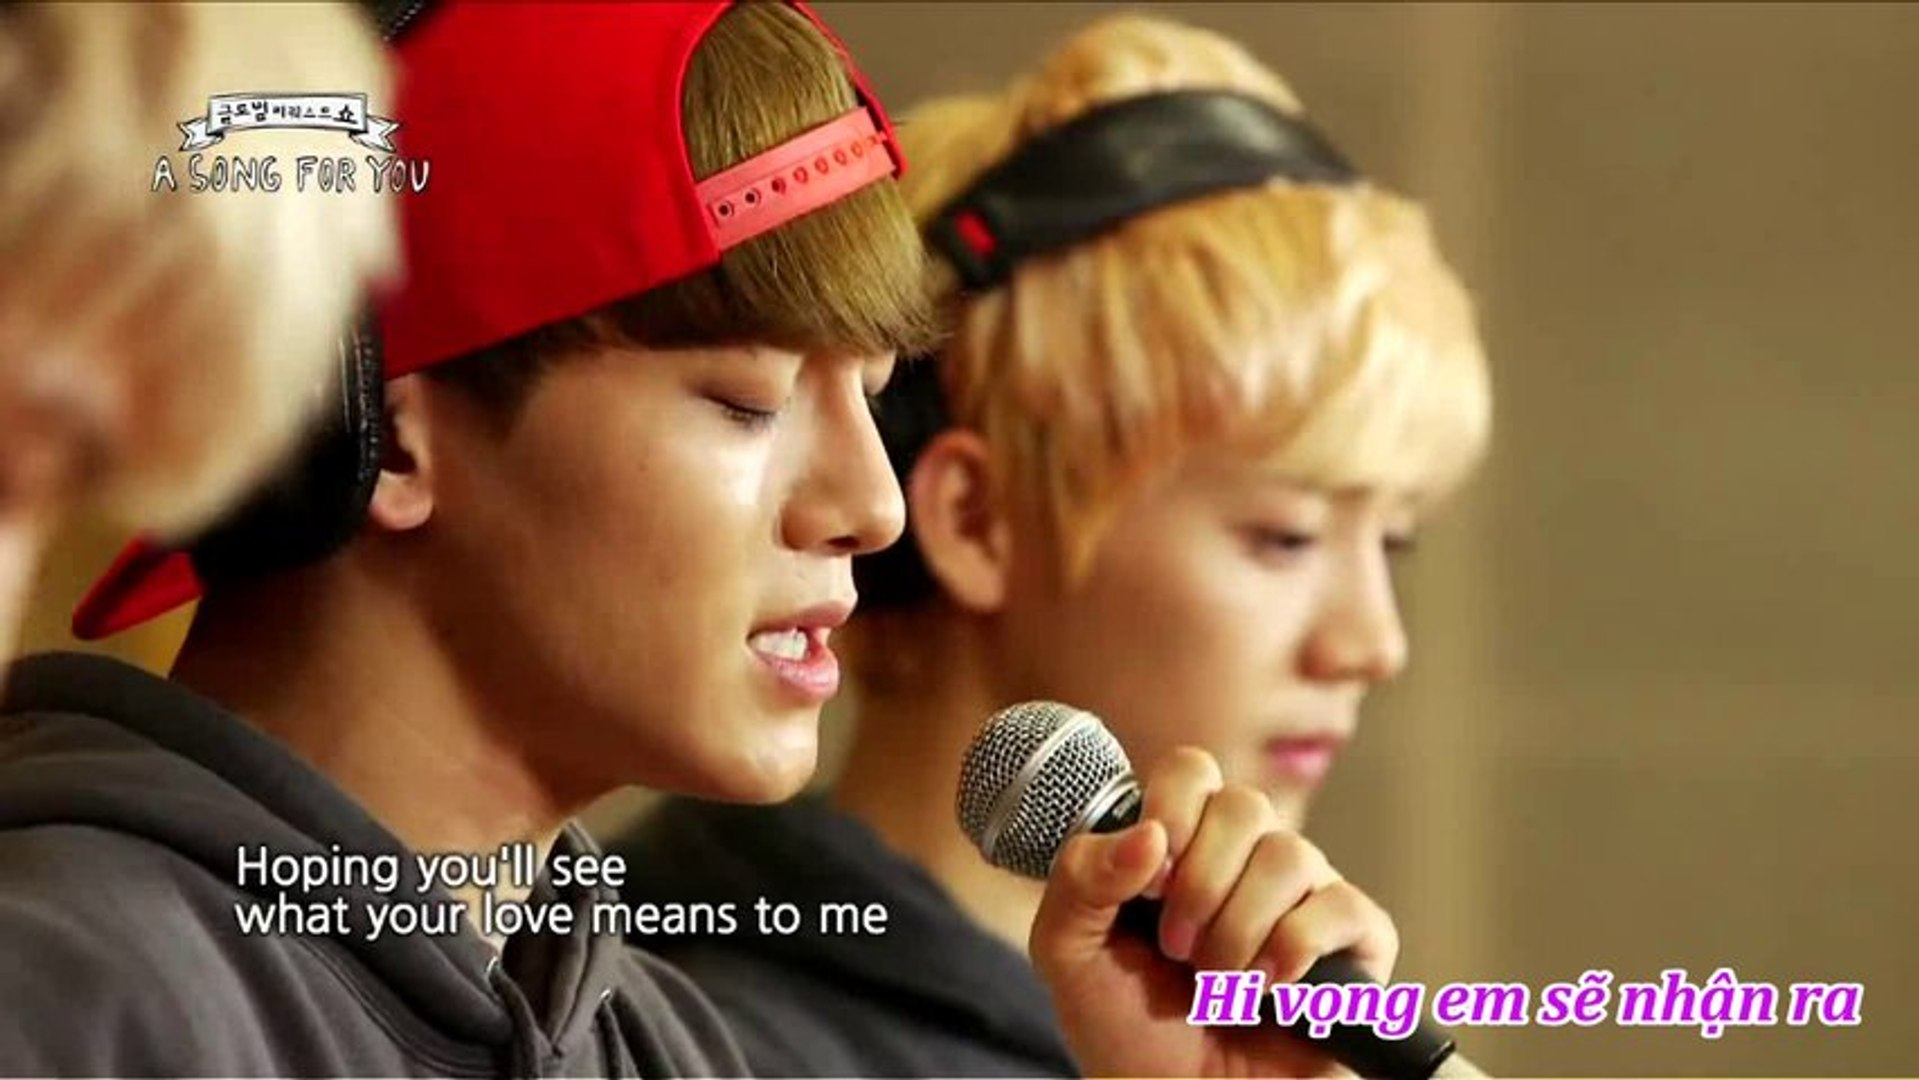 [vietsub]  Open Arms by EXO (Global Request Show - A Song For You 2013.08.23)